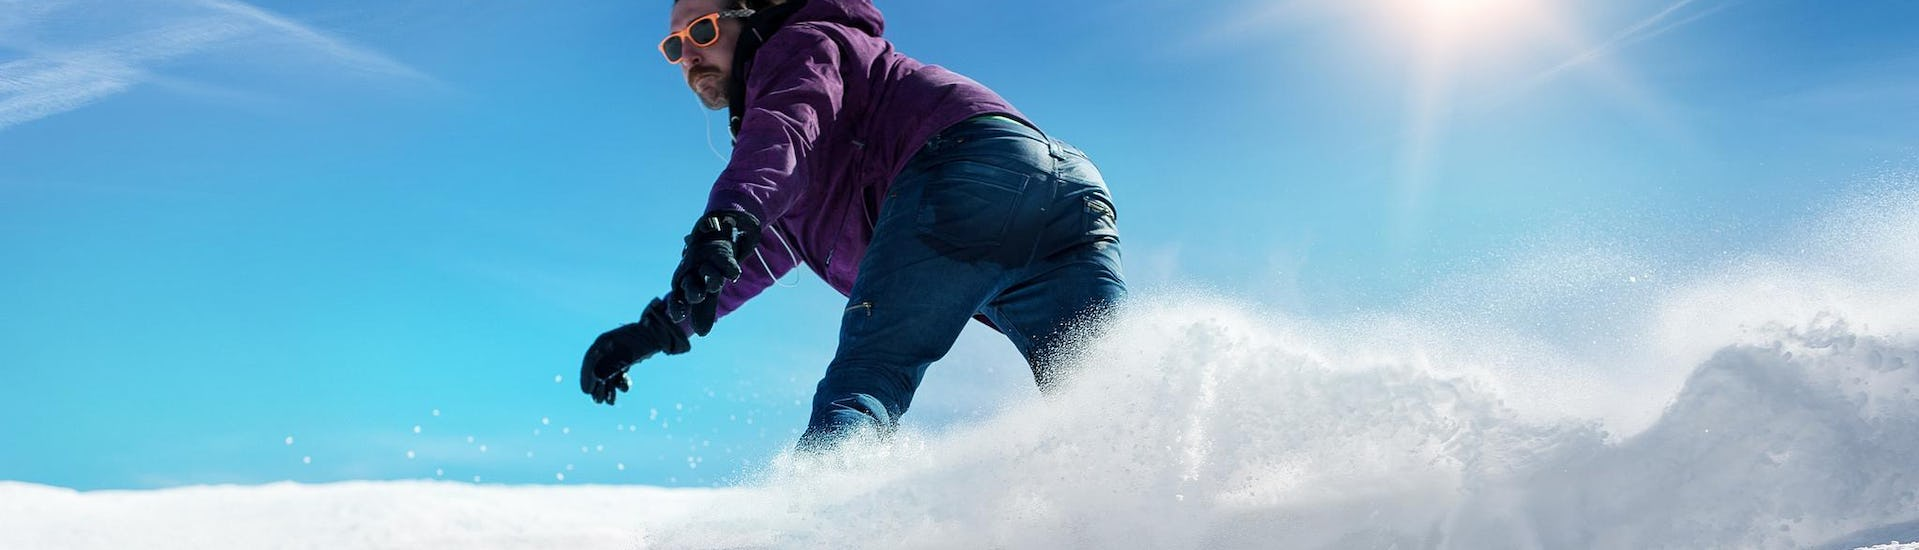 A snowboarder is sliding down a snowy slope during hisPrivate Snowboarding Lessons for Kids & Adults - Low Season with the ski school ESI Easy2Ride Morzine.